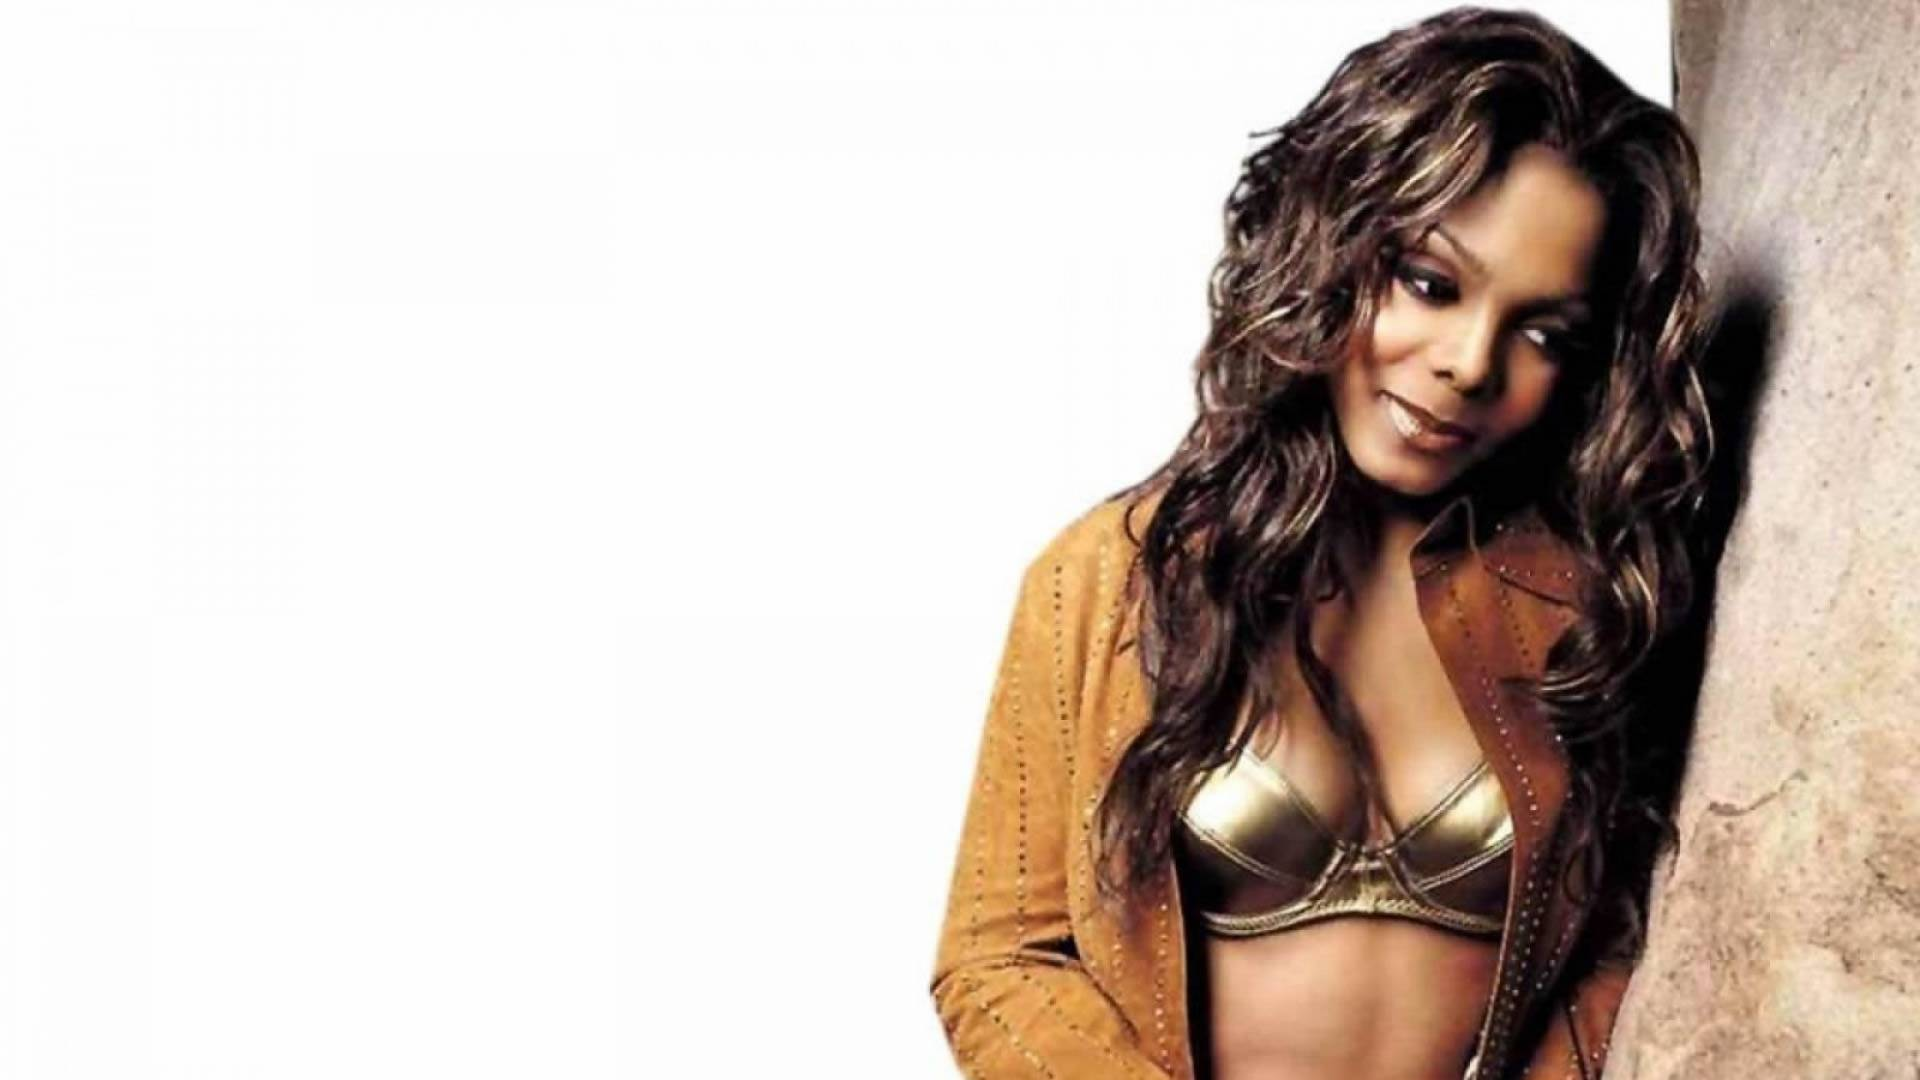 Pictures of janet jackson amateur — pic 1